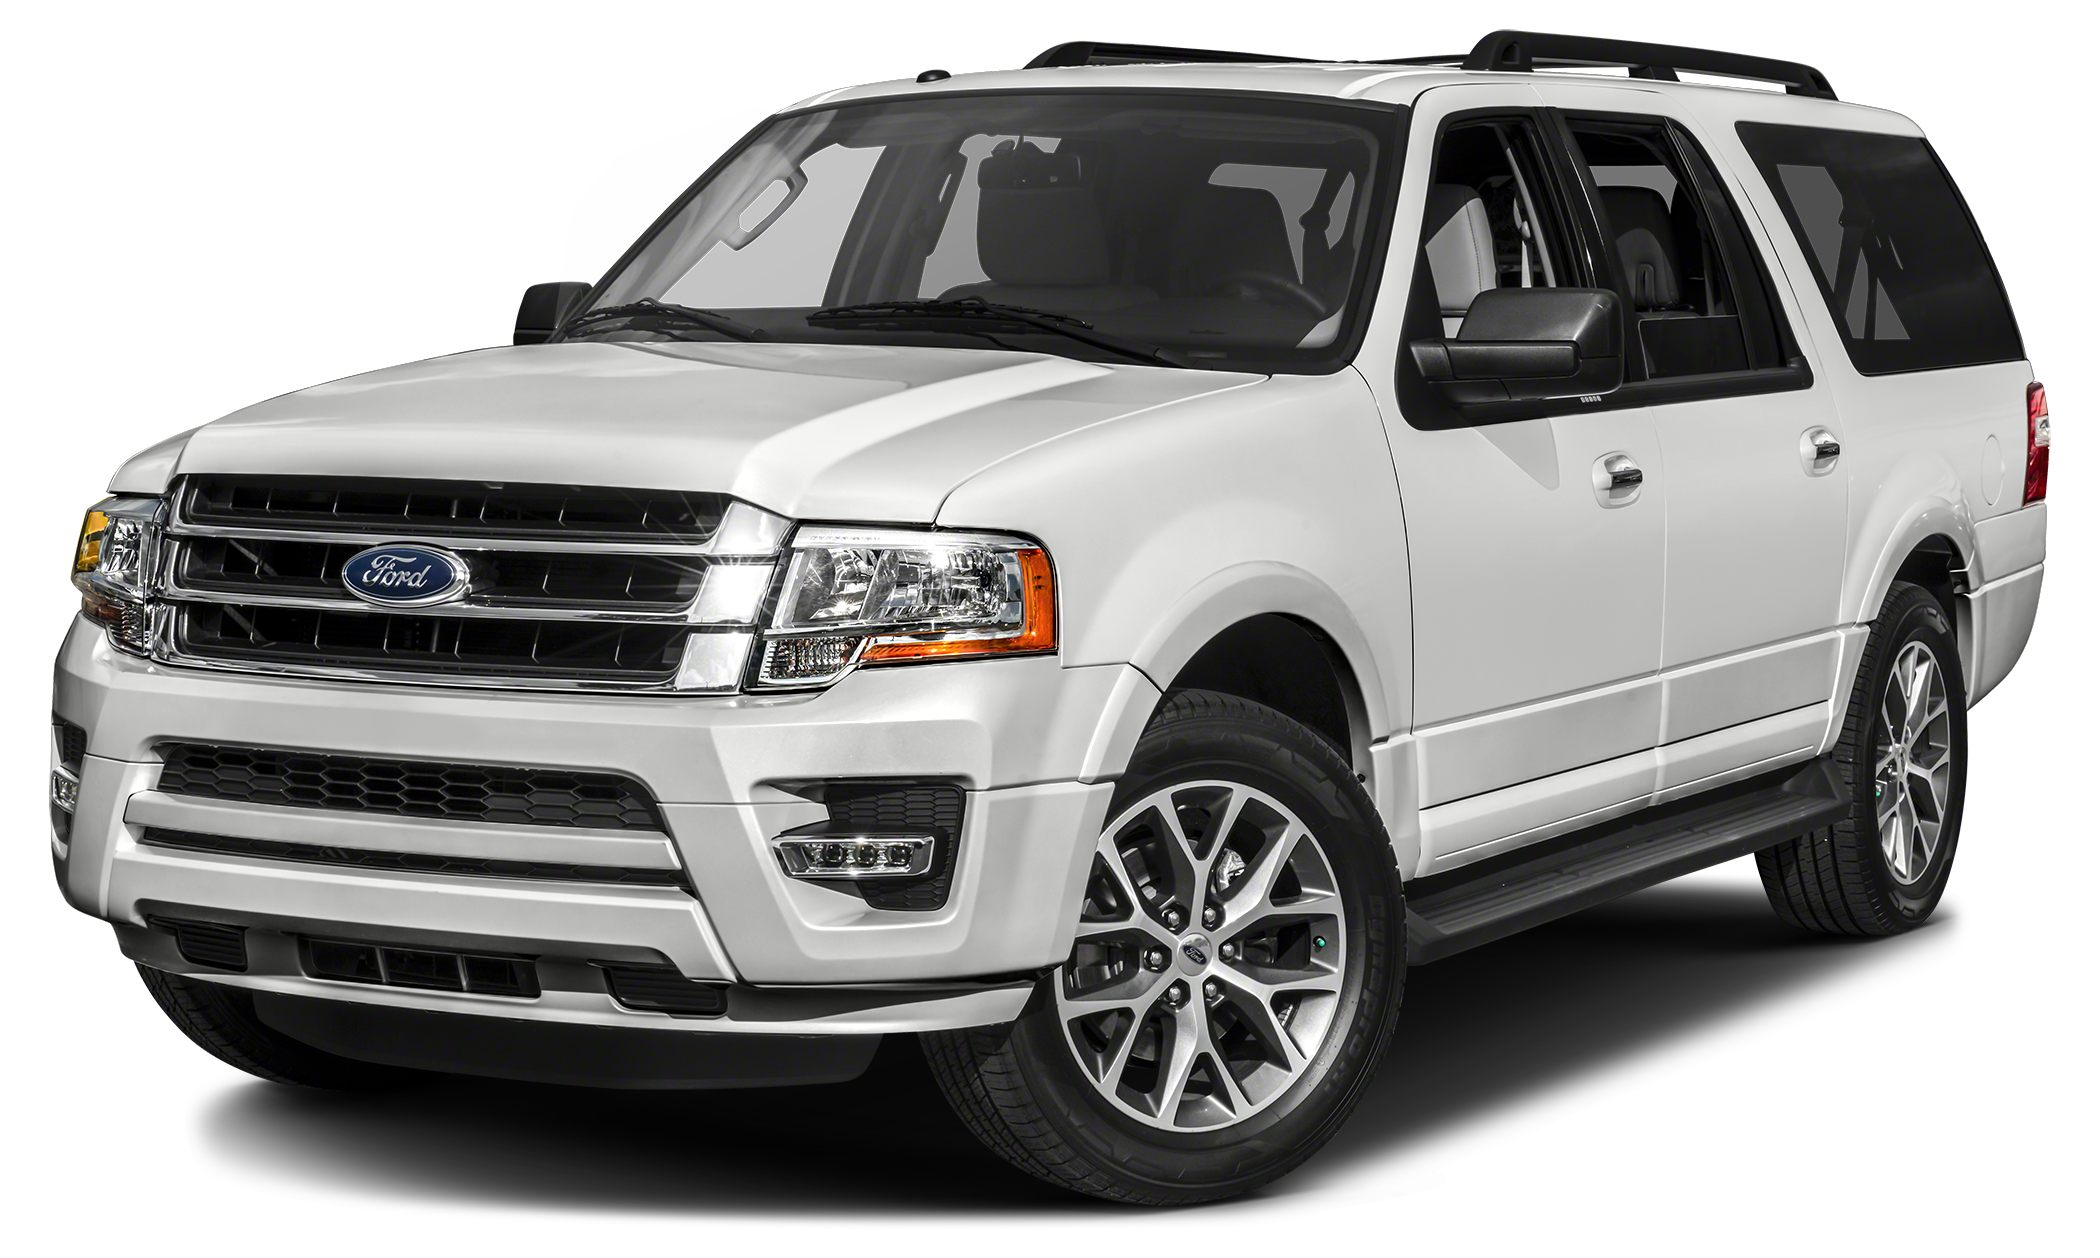 2016 Ford Expedition EL Platinum The 2016 Ford Expedition features a new aggressive front end crea